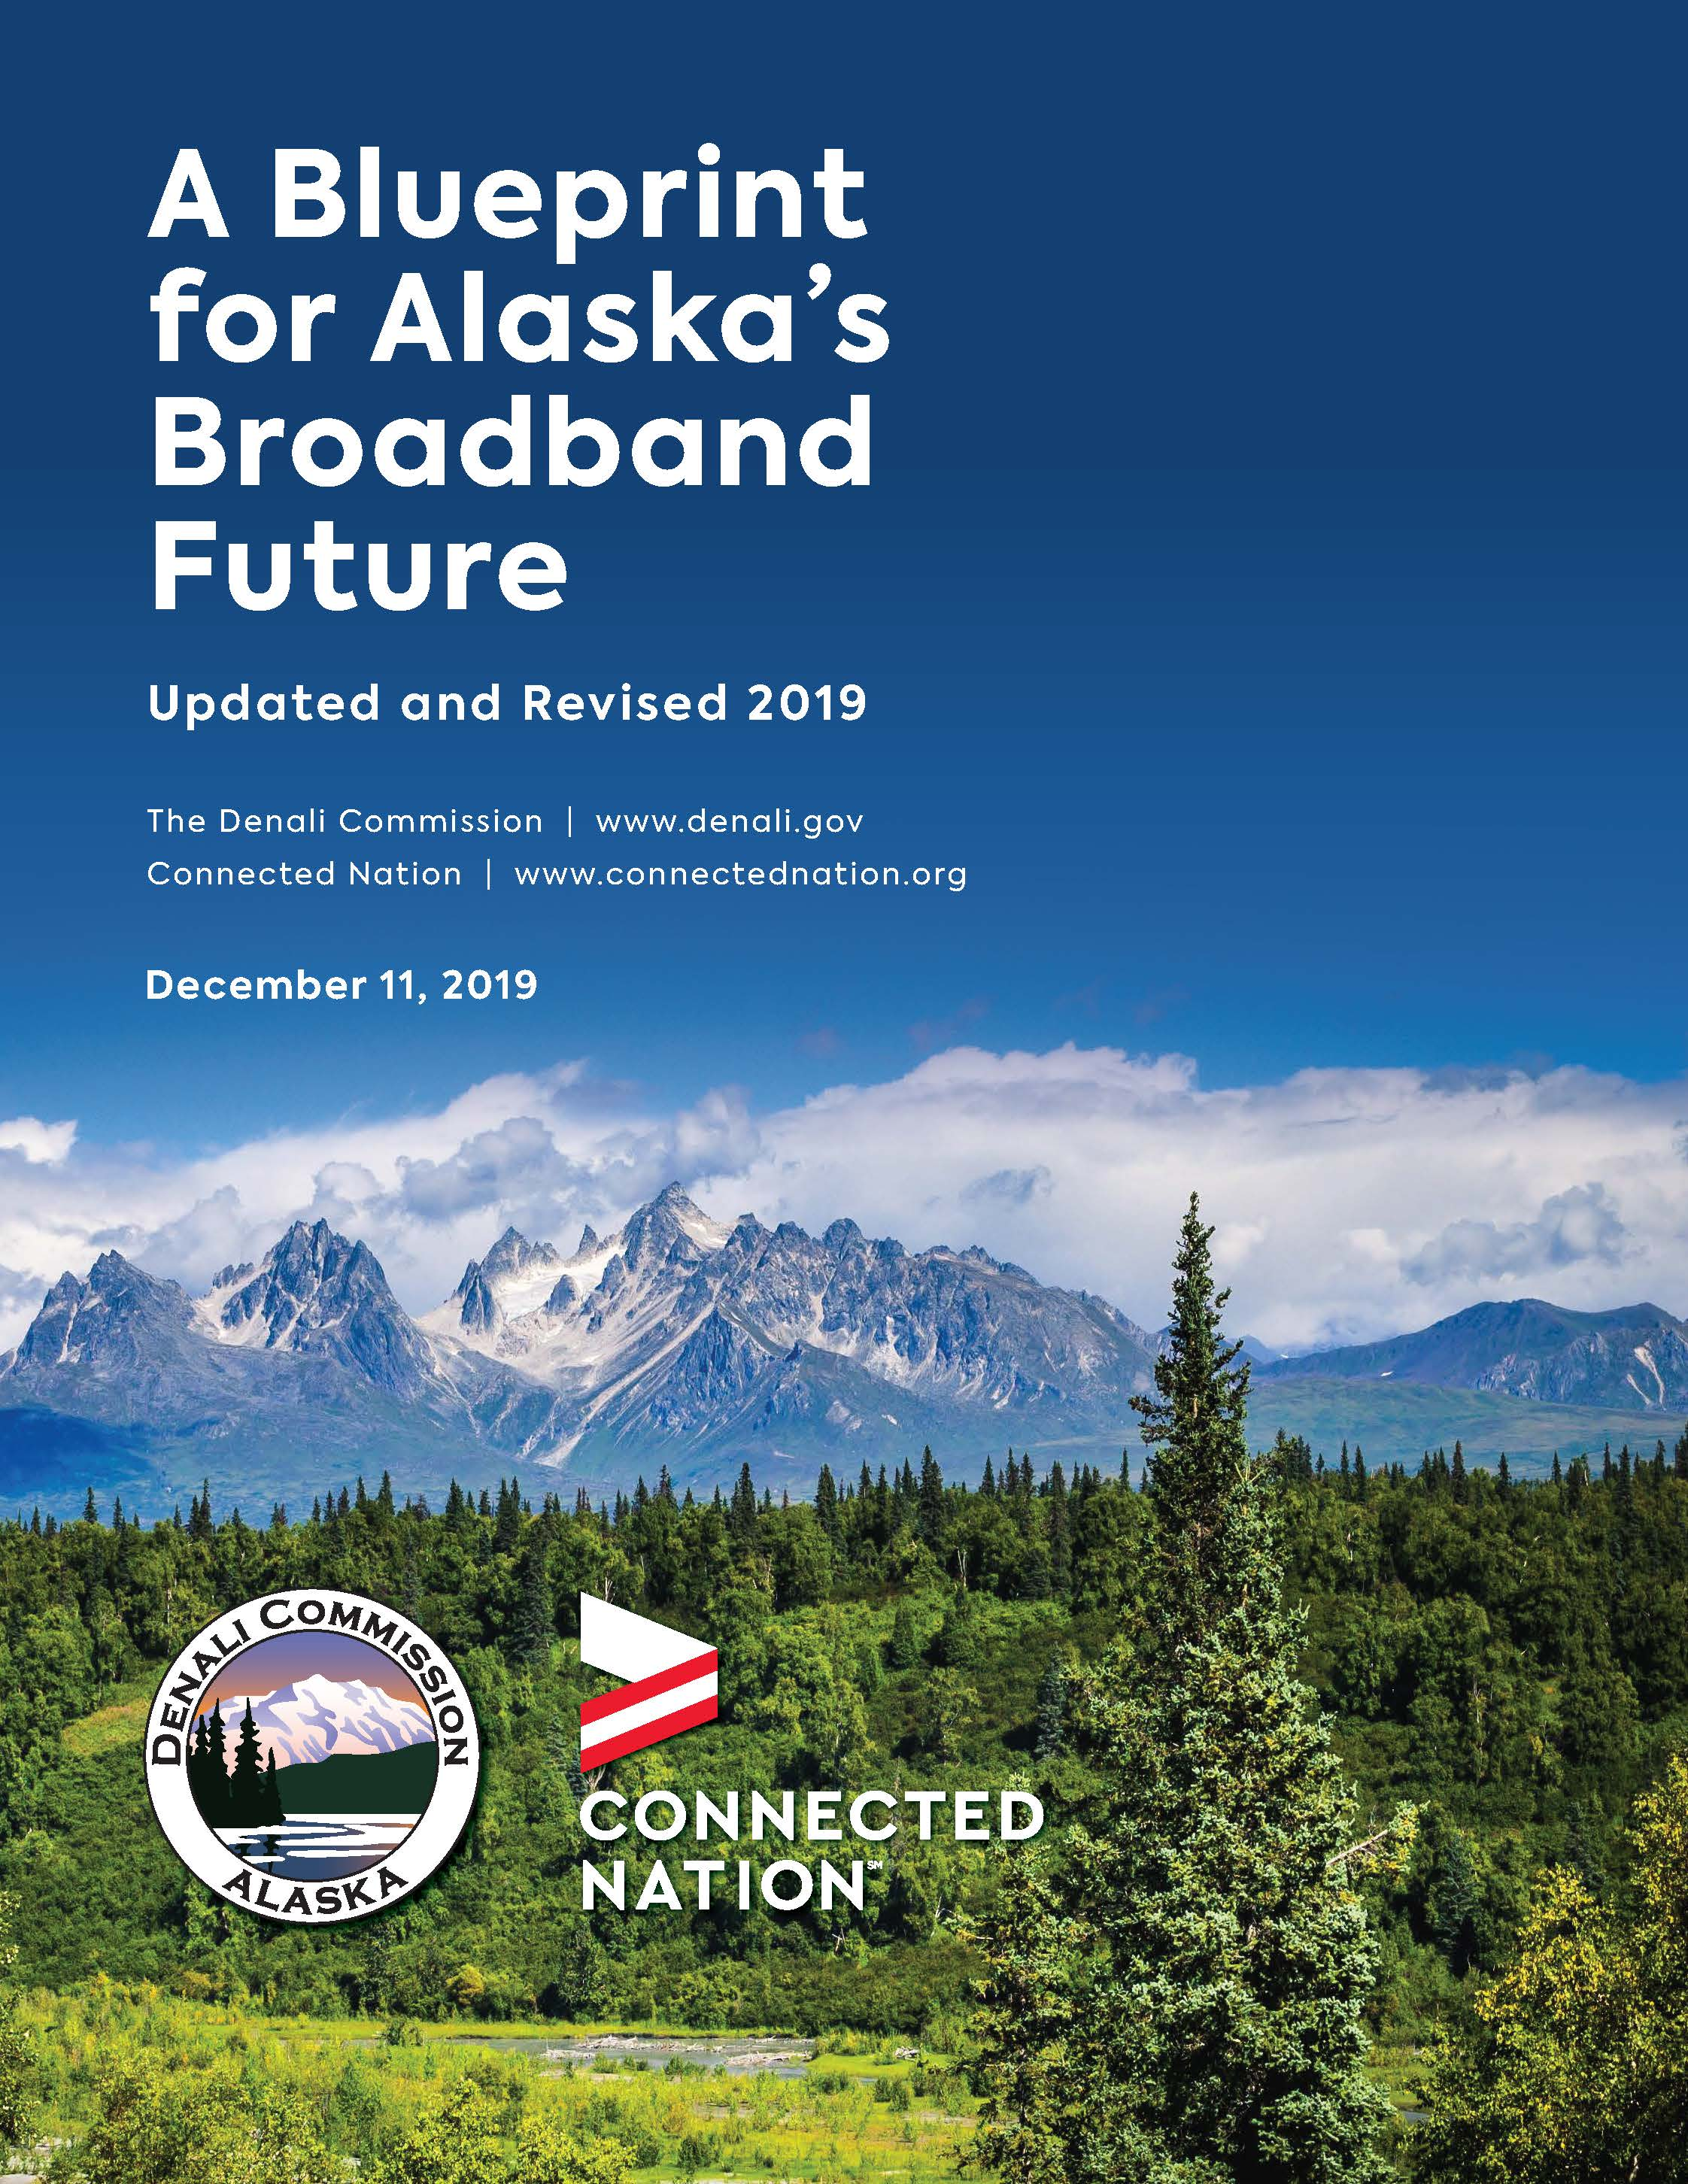 Blueprint for Alaska's Broadband Future